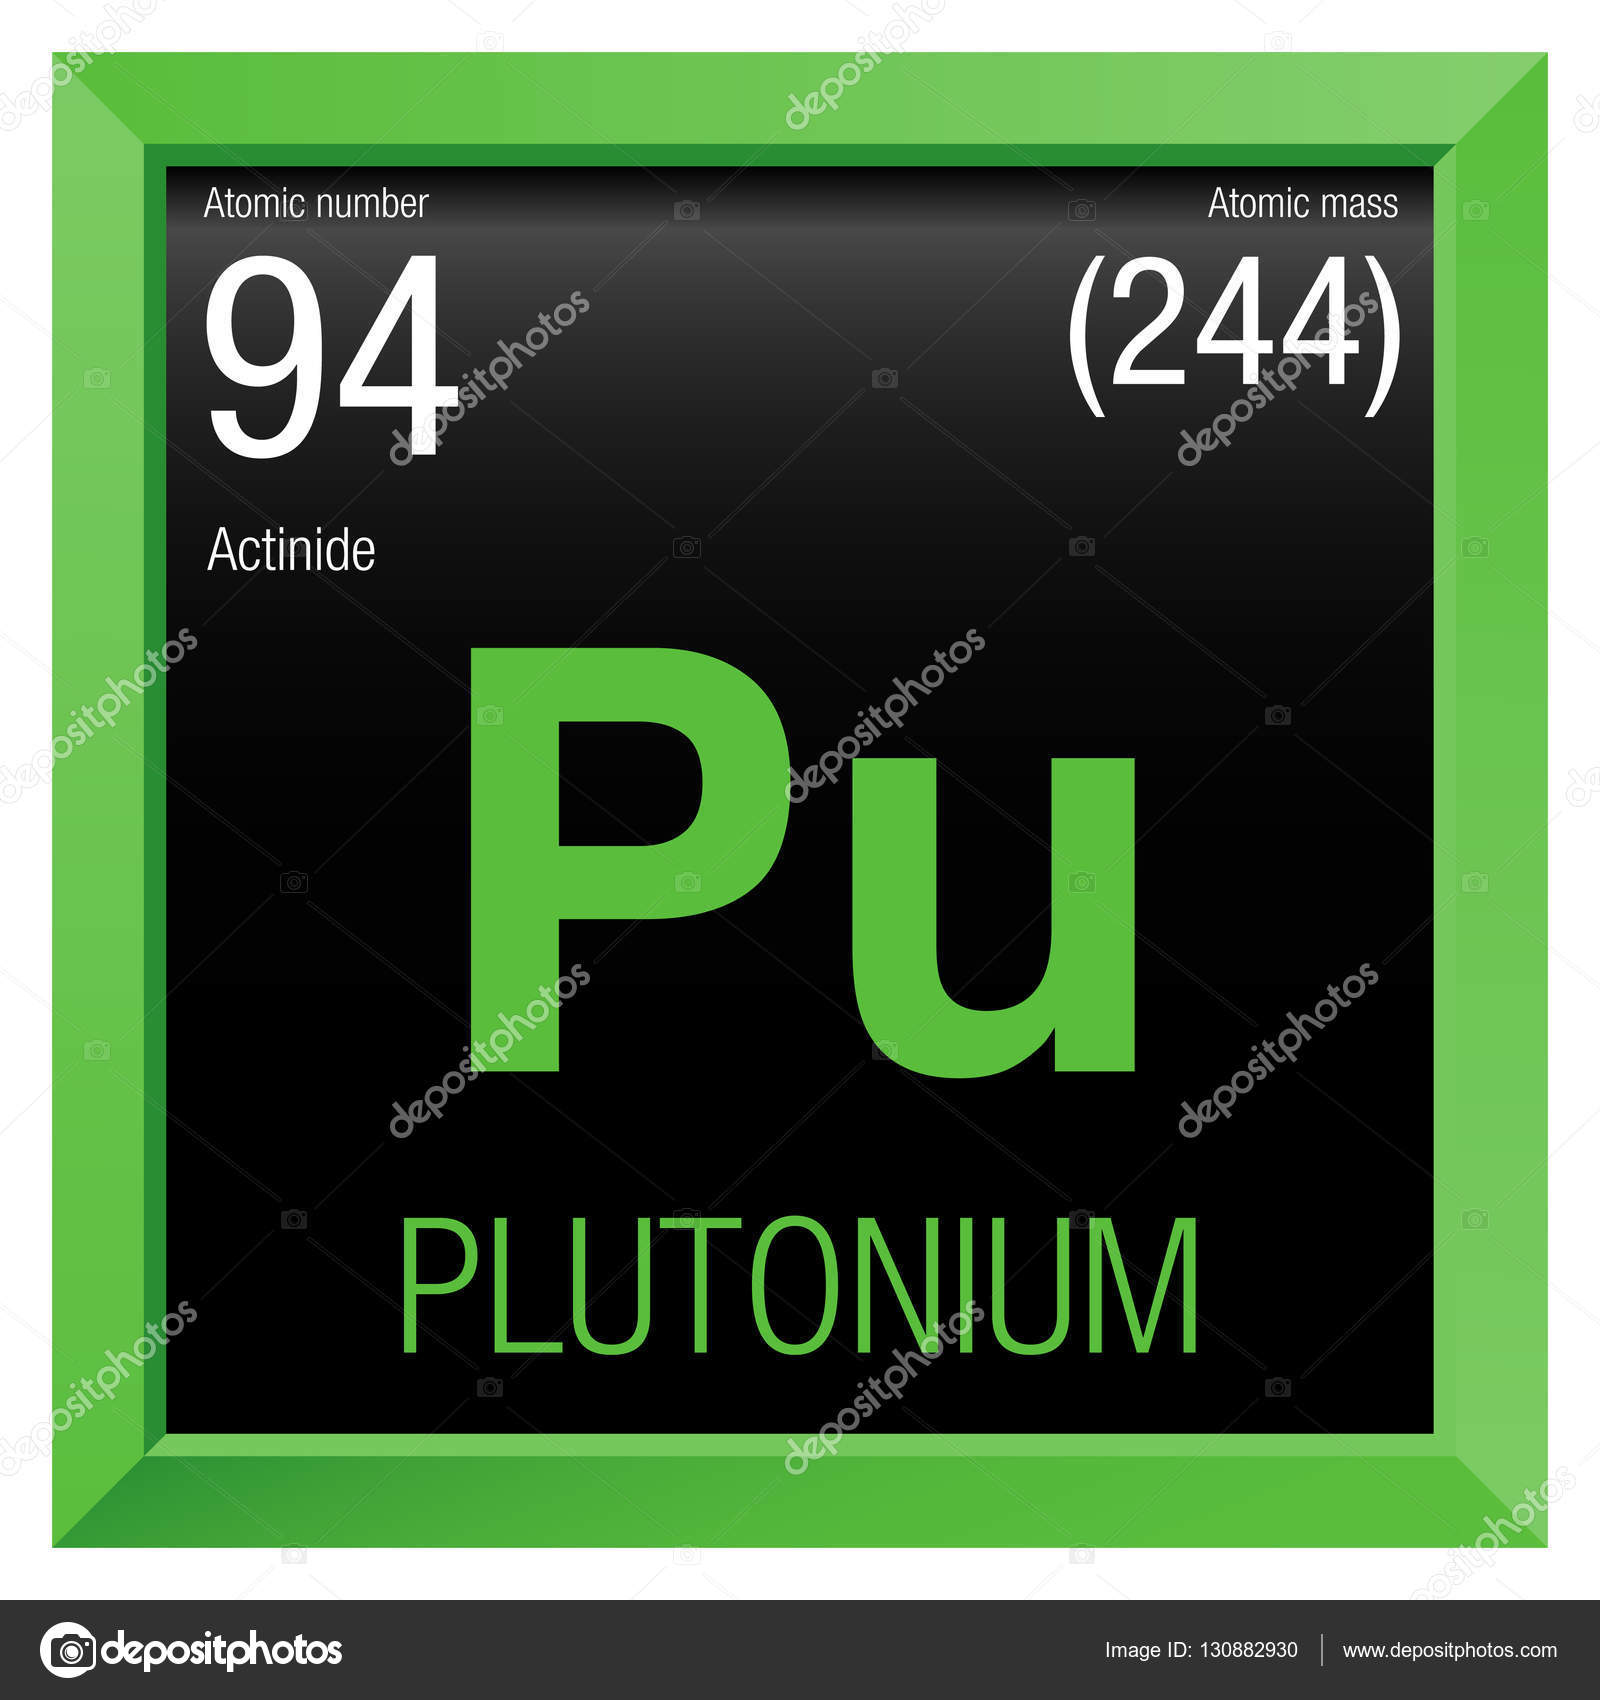 Plutonium symbol element number 94 of the periodic table of the plutonium symbol element number 94 of the periodic table of the elements chemistry biocorpaavc Image collections